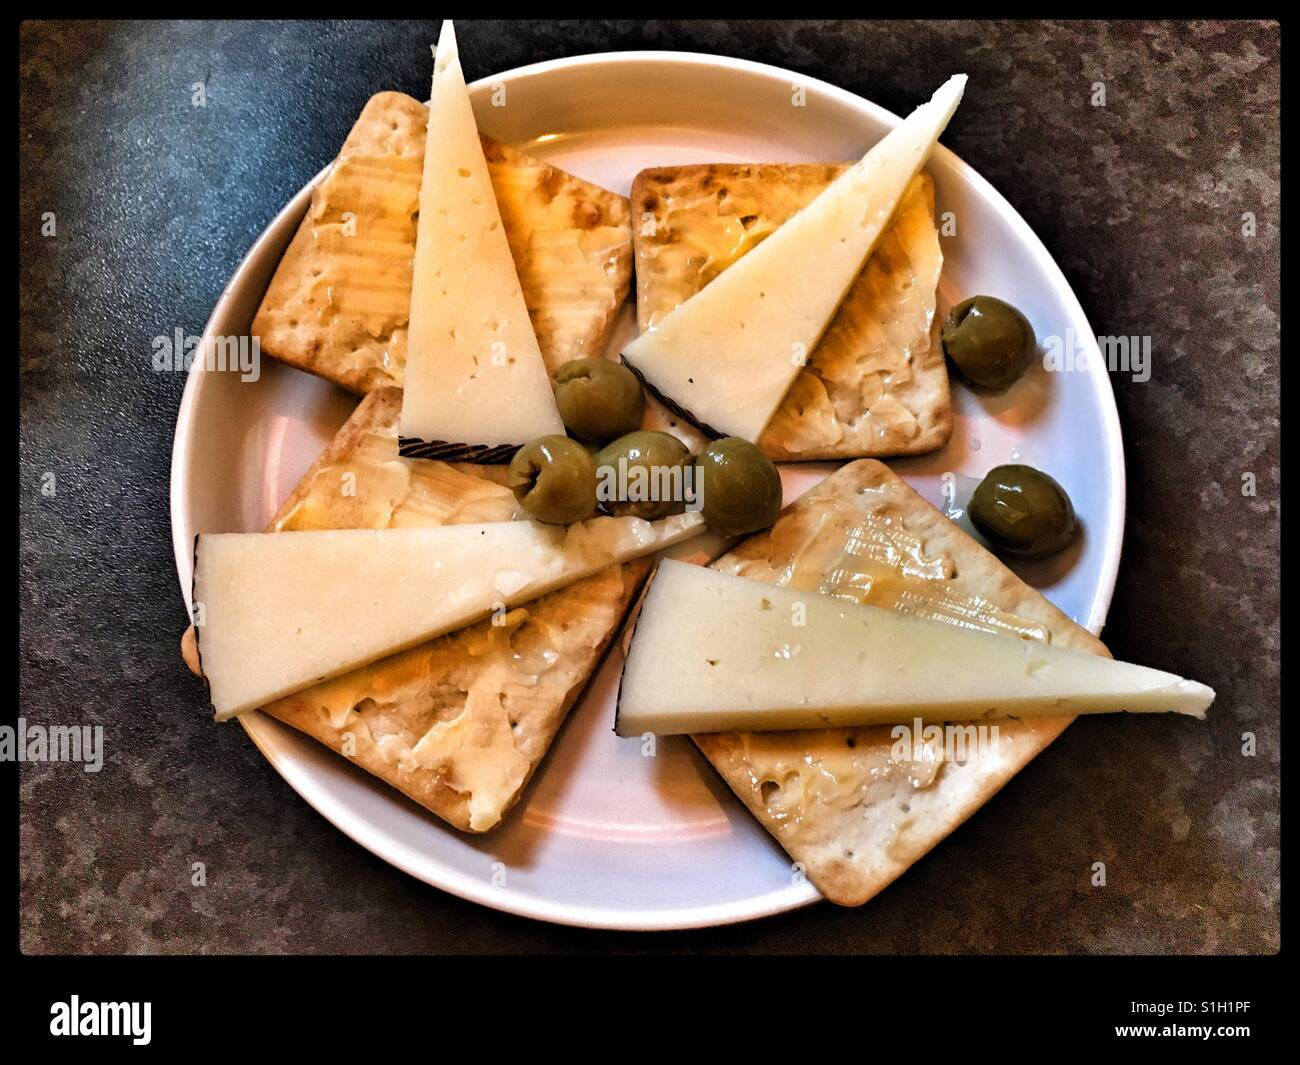 Tapas of Manchego Cheese, olives and cream crackers. - Stock Image